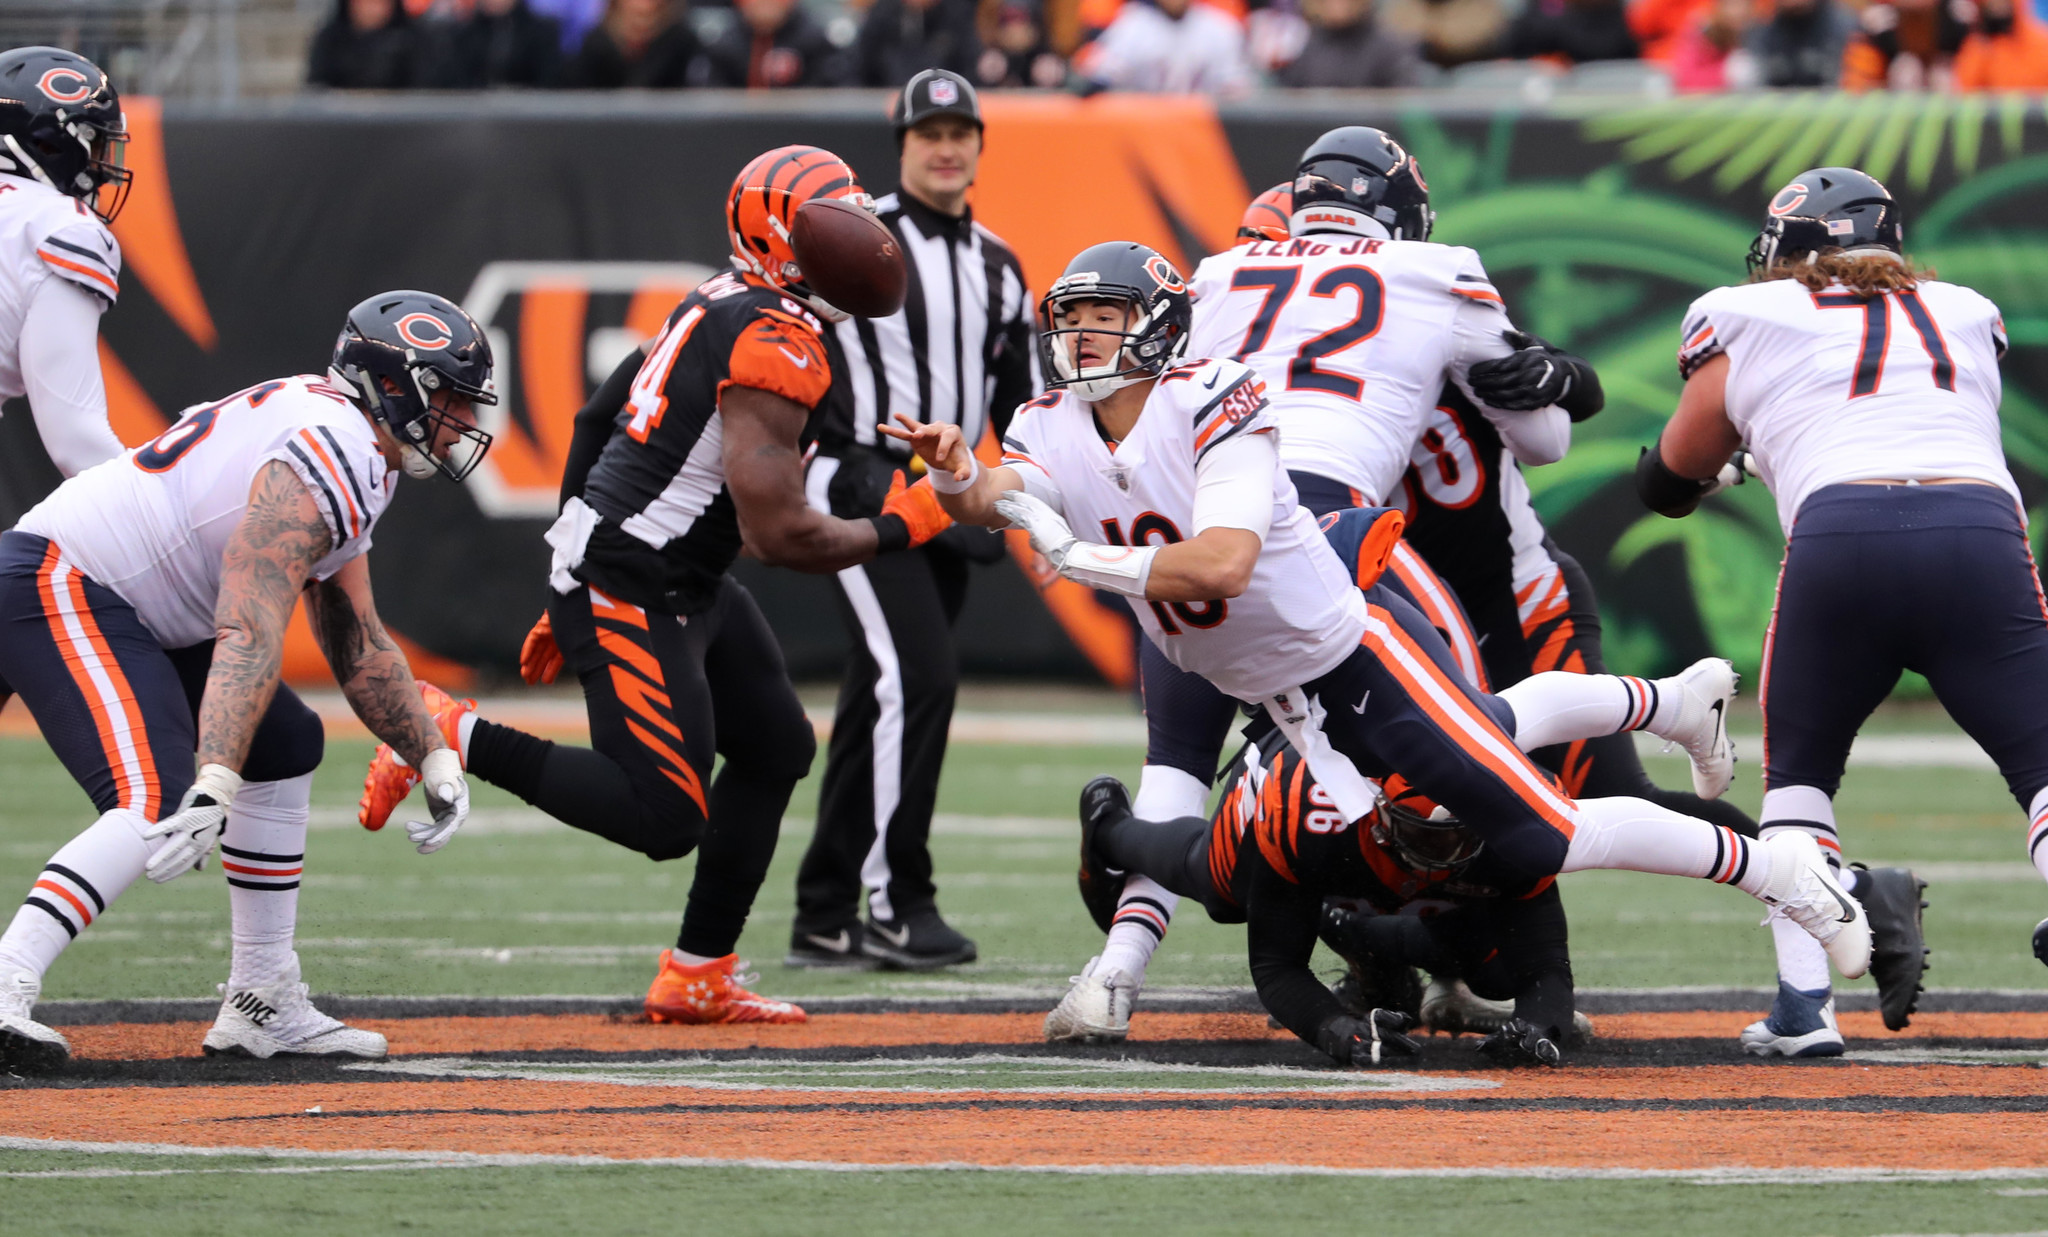 Ct-bears-bengals-week-14-score-20171210